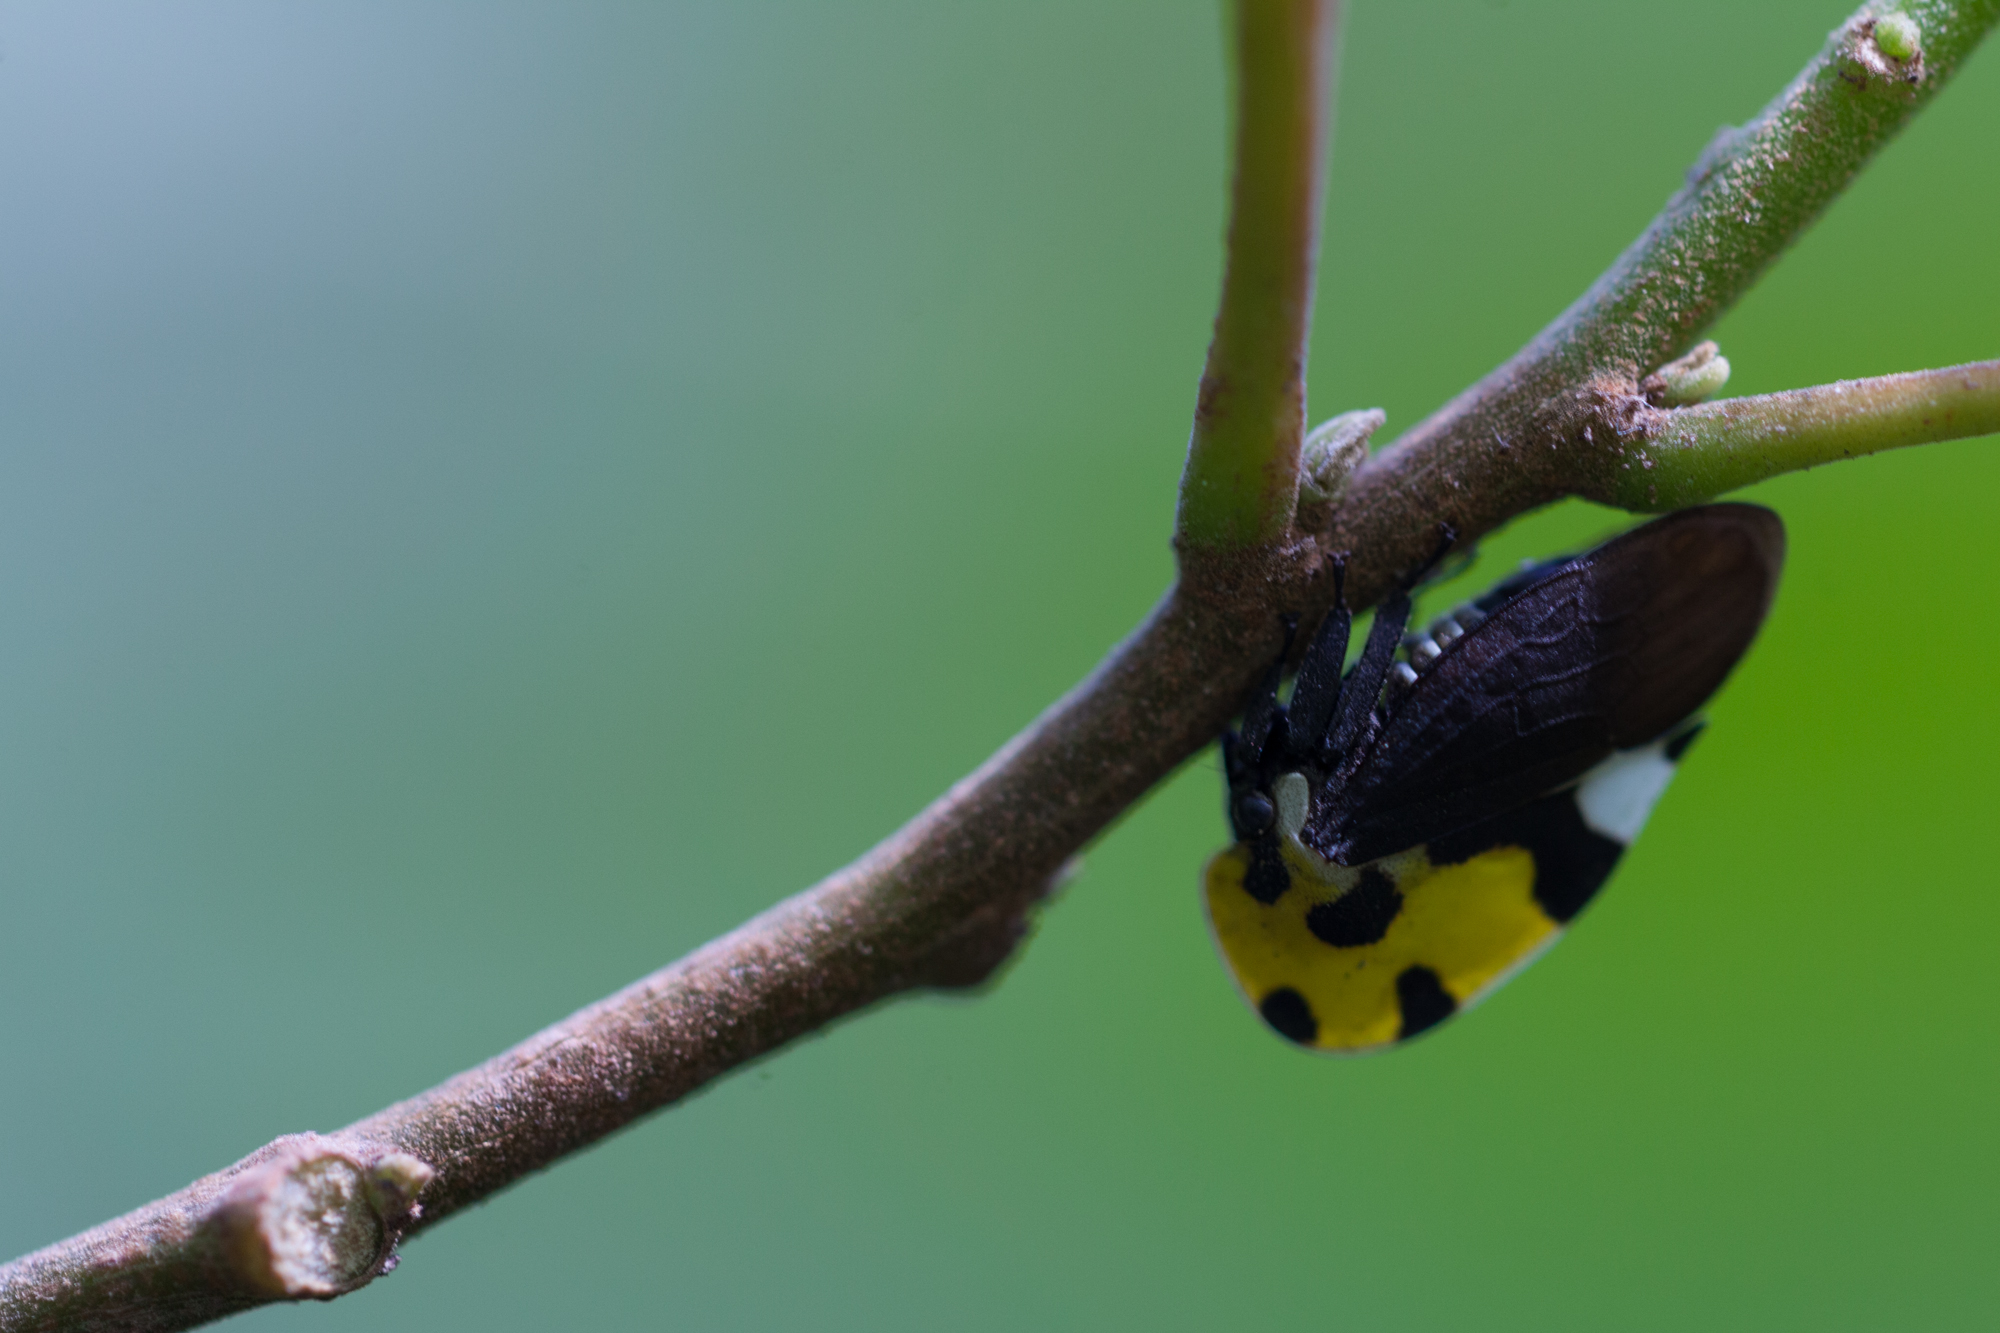 A black and yellow treehopper ( Membracis mexicana ) also found refuge at the Spirogyra Butterfly Exhibit.